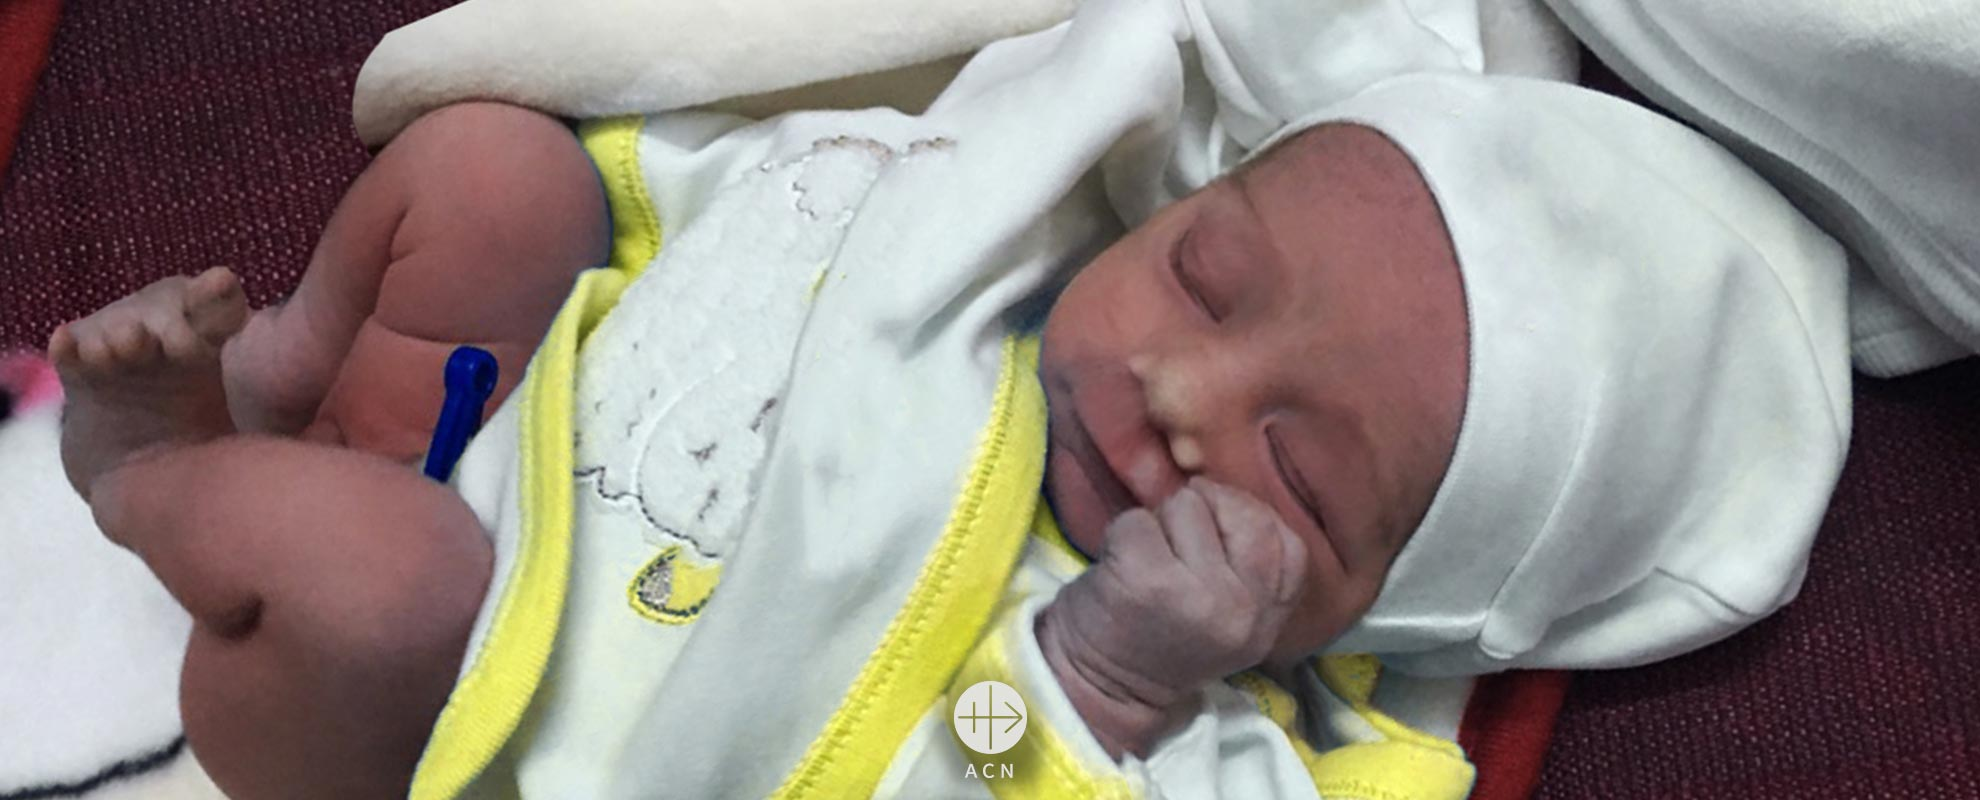 The baby saved from death in Iraq and adopted by a Christian family